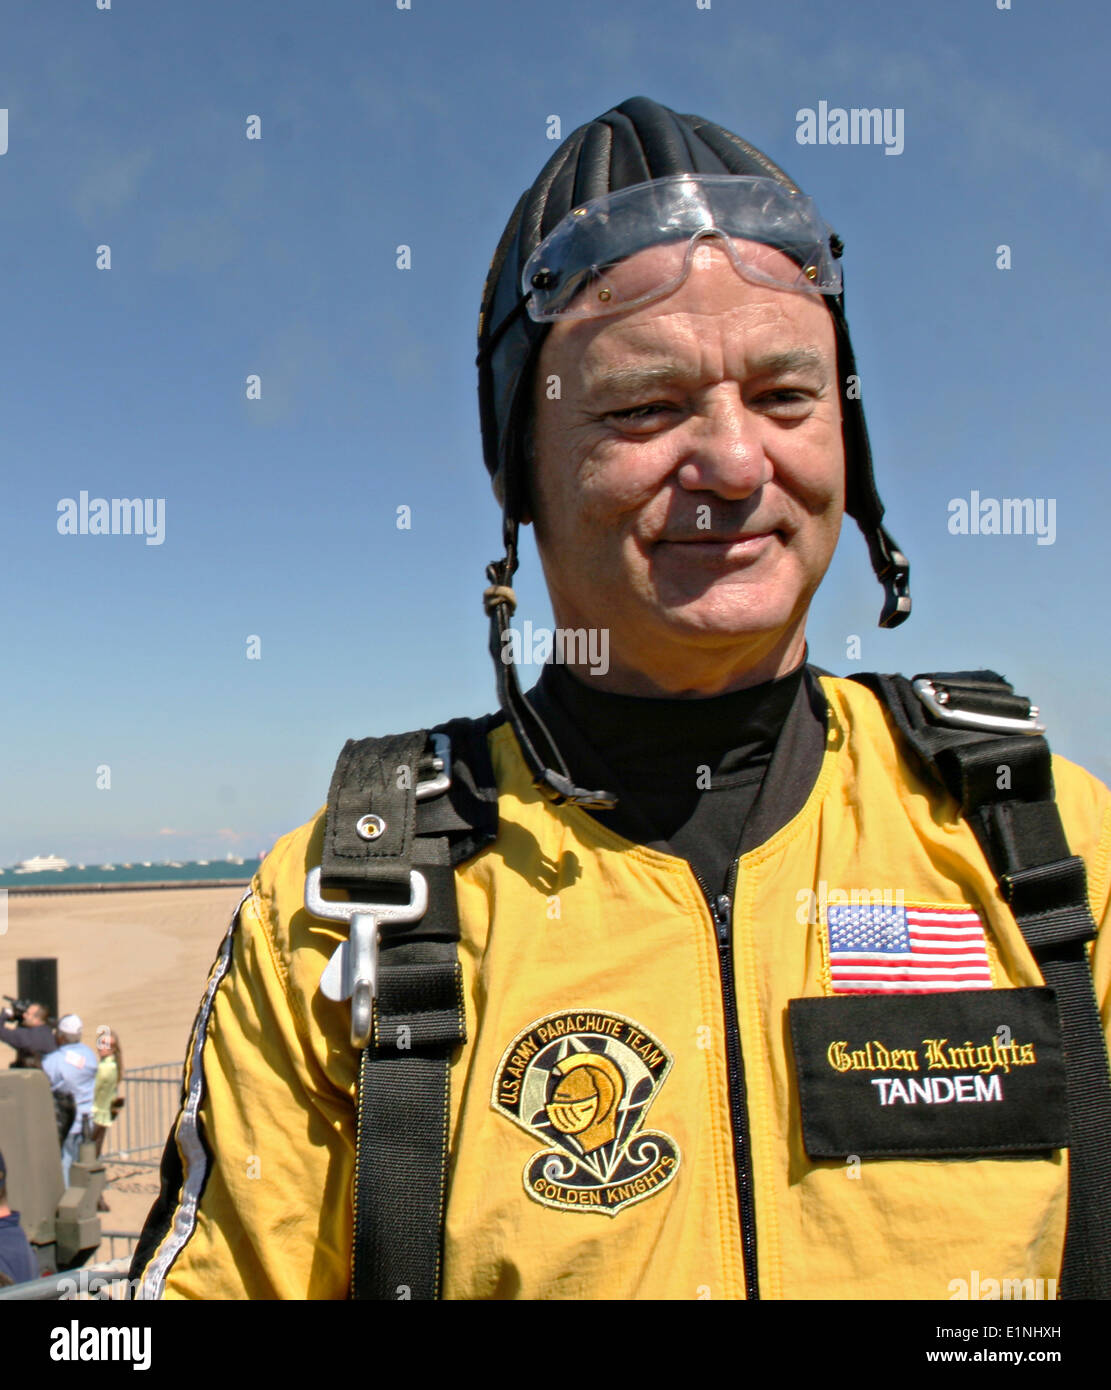 Actor Bill Murray smiles after parachuting in tandem with the US Army Golden Knights Parachute Team at the 50th annual Chicago Air and Water Show at North Avenue Beach August 15, 2008 in Chicago, IL. - Stock Image